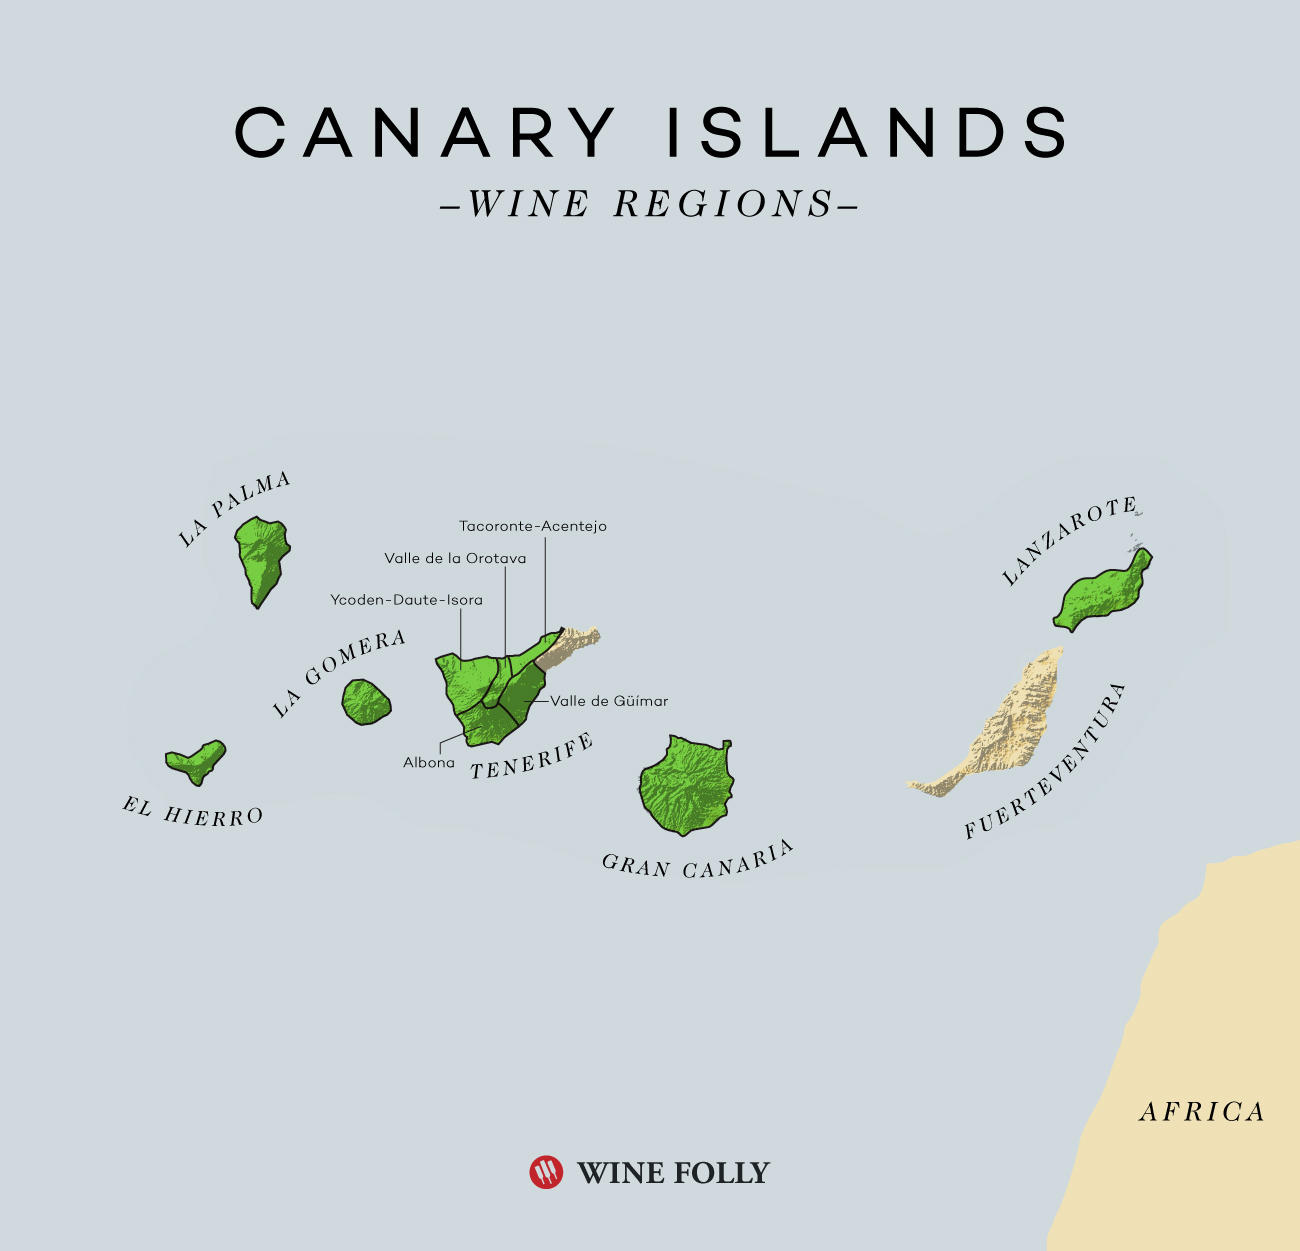 Canary Islands Wine map by Wine Folly